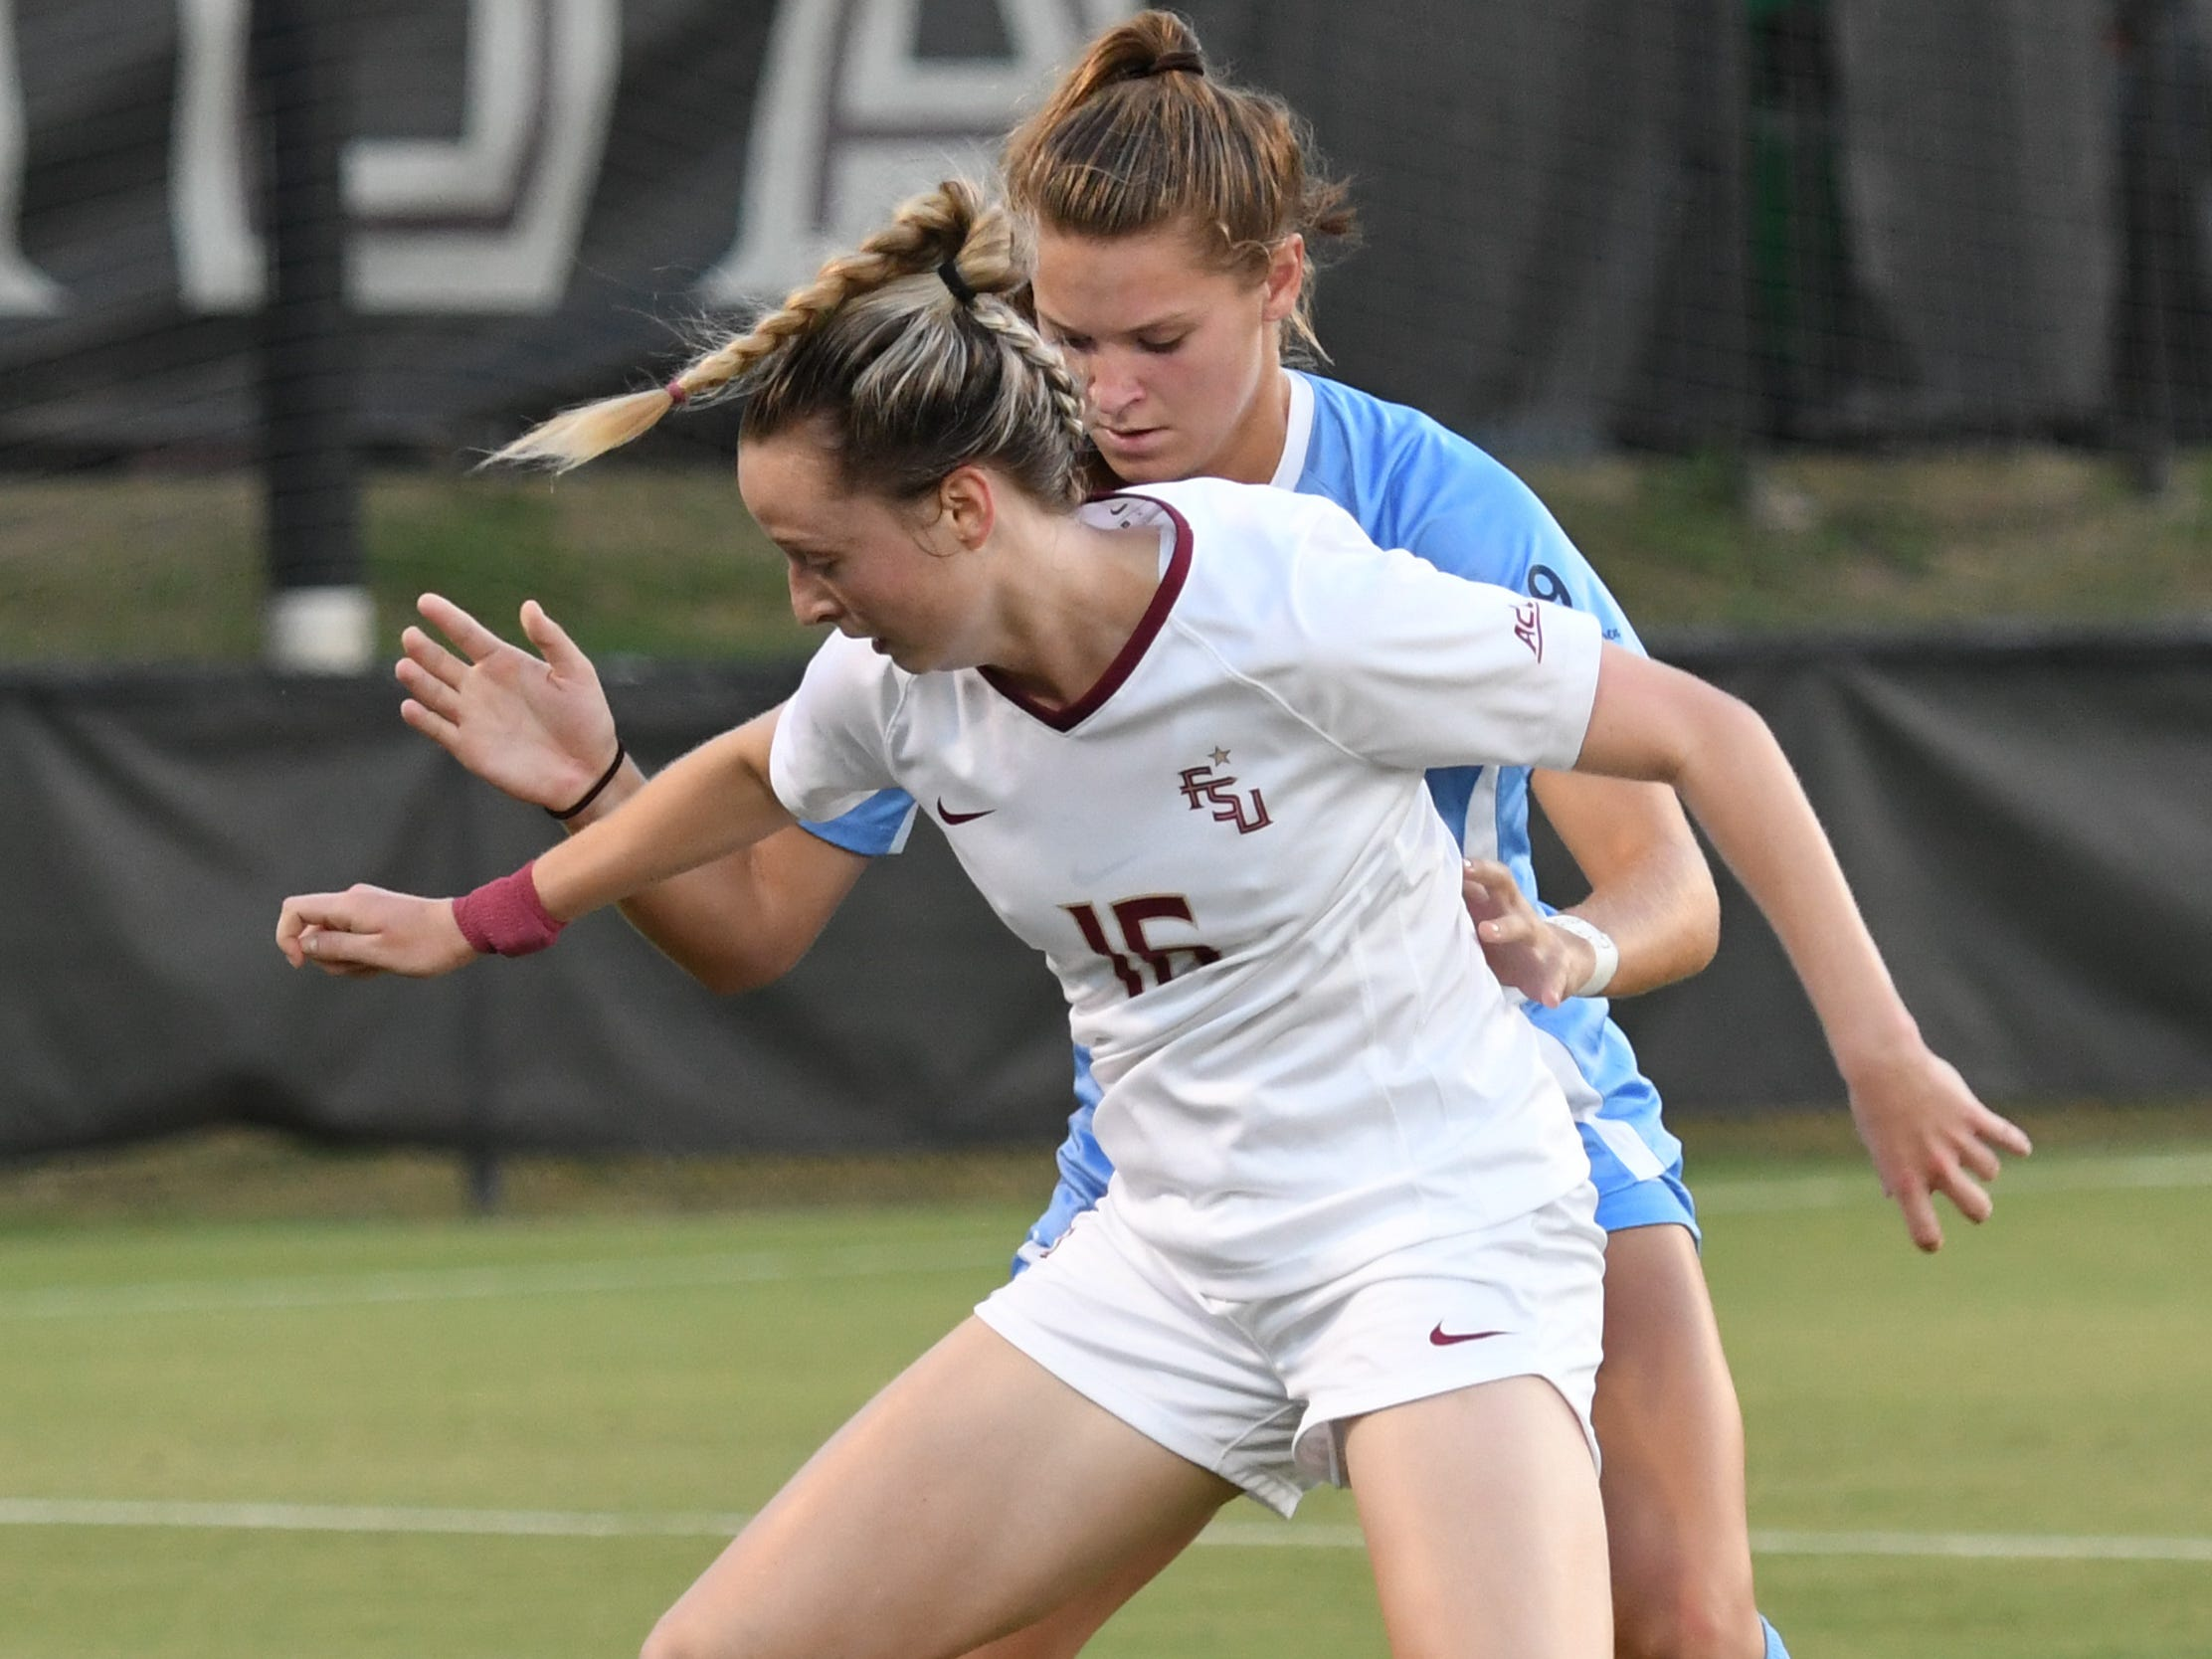 FSU sophomore defender Gabby Carle (16) controlling the ball in the first half of FSU's game against UNC on September 14th at the Seminole Soccer Complex.